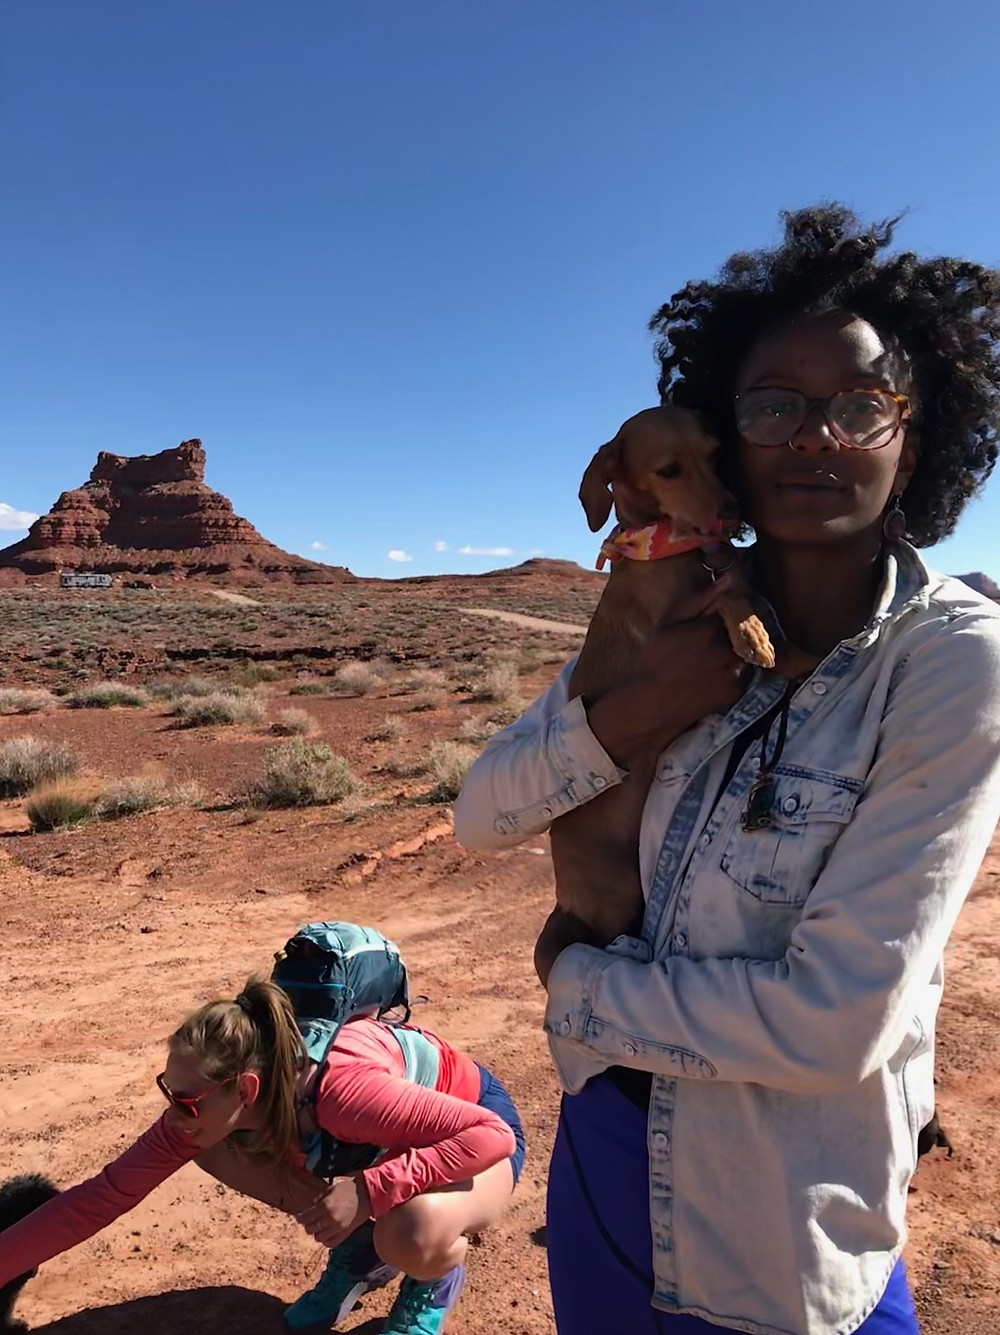 Crazy dog lady camp out in Valley of the Gods